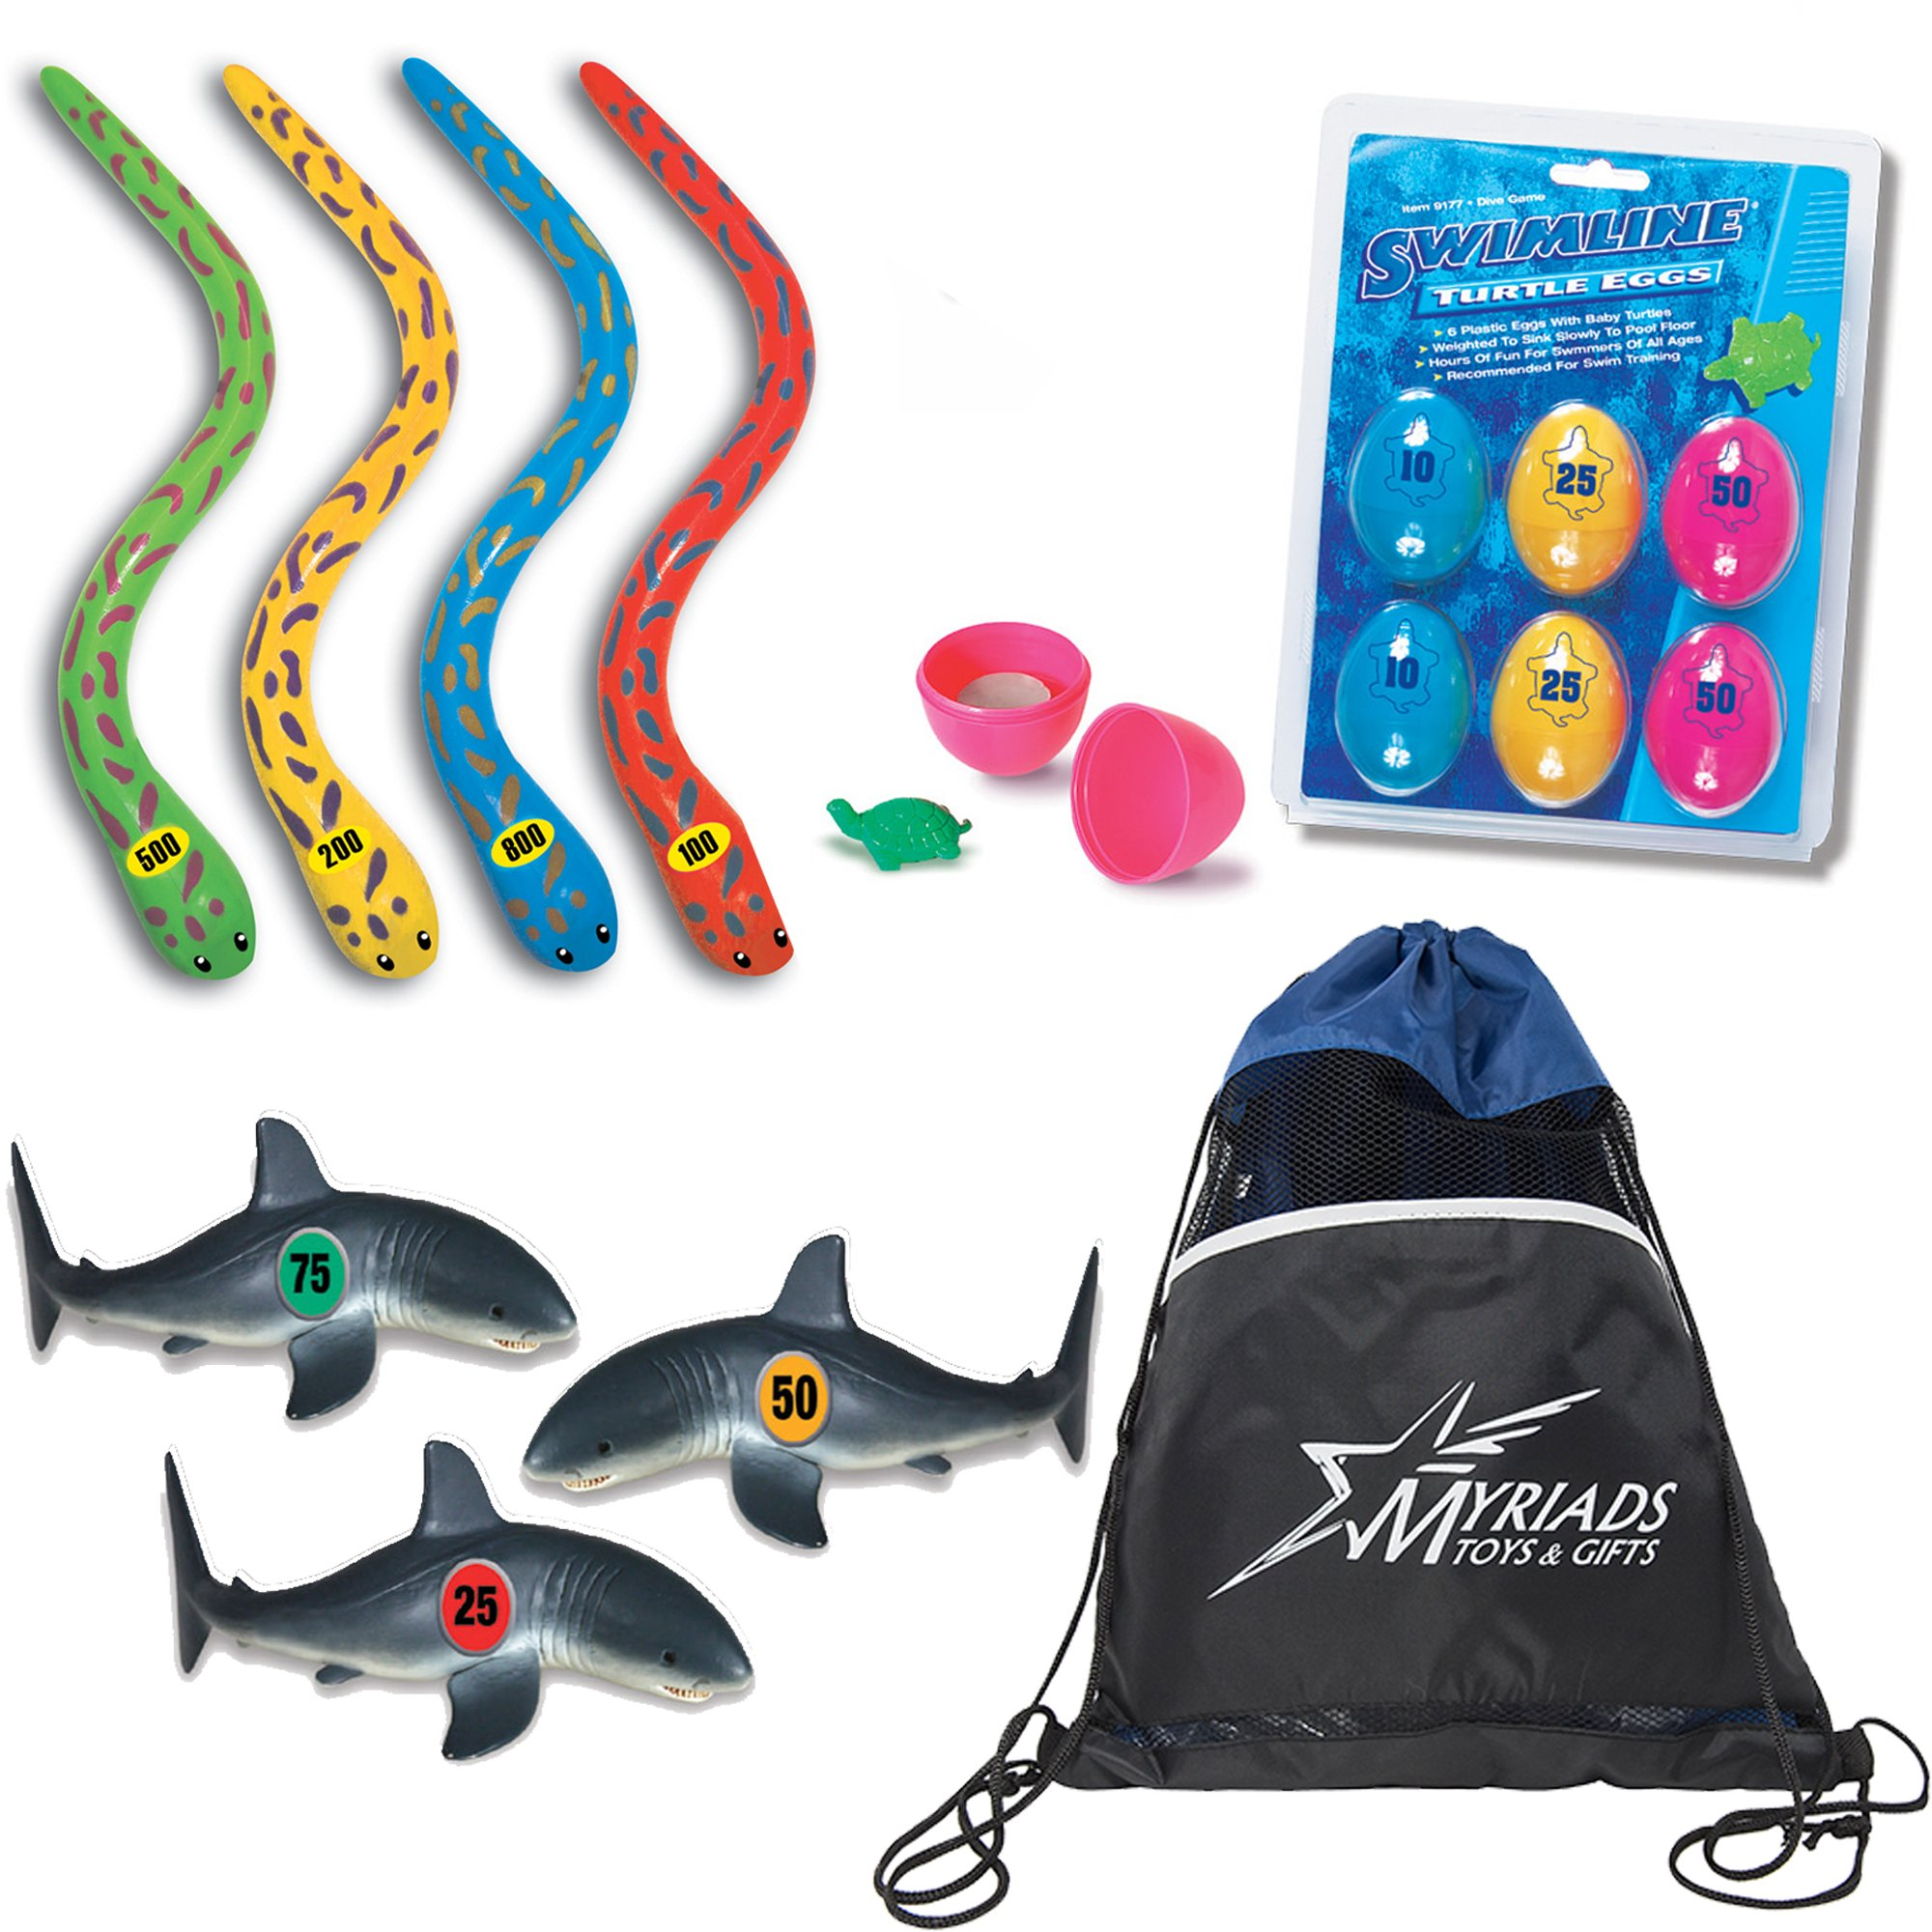 Swimline Underwater Swimming/Diving Pool Toys Set of 3: Turtle Eggs Dive Game, Eel Sticks Dive Game & Shark Frenzy Dive Game with a Drawstring Bag by Swimline